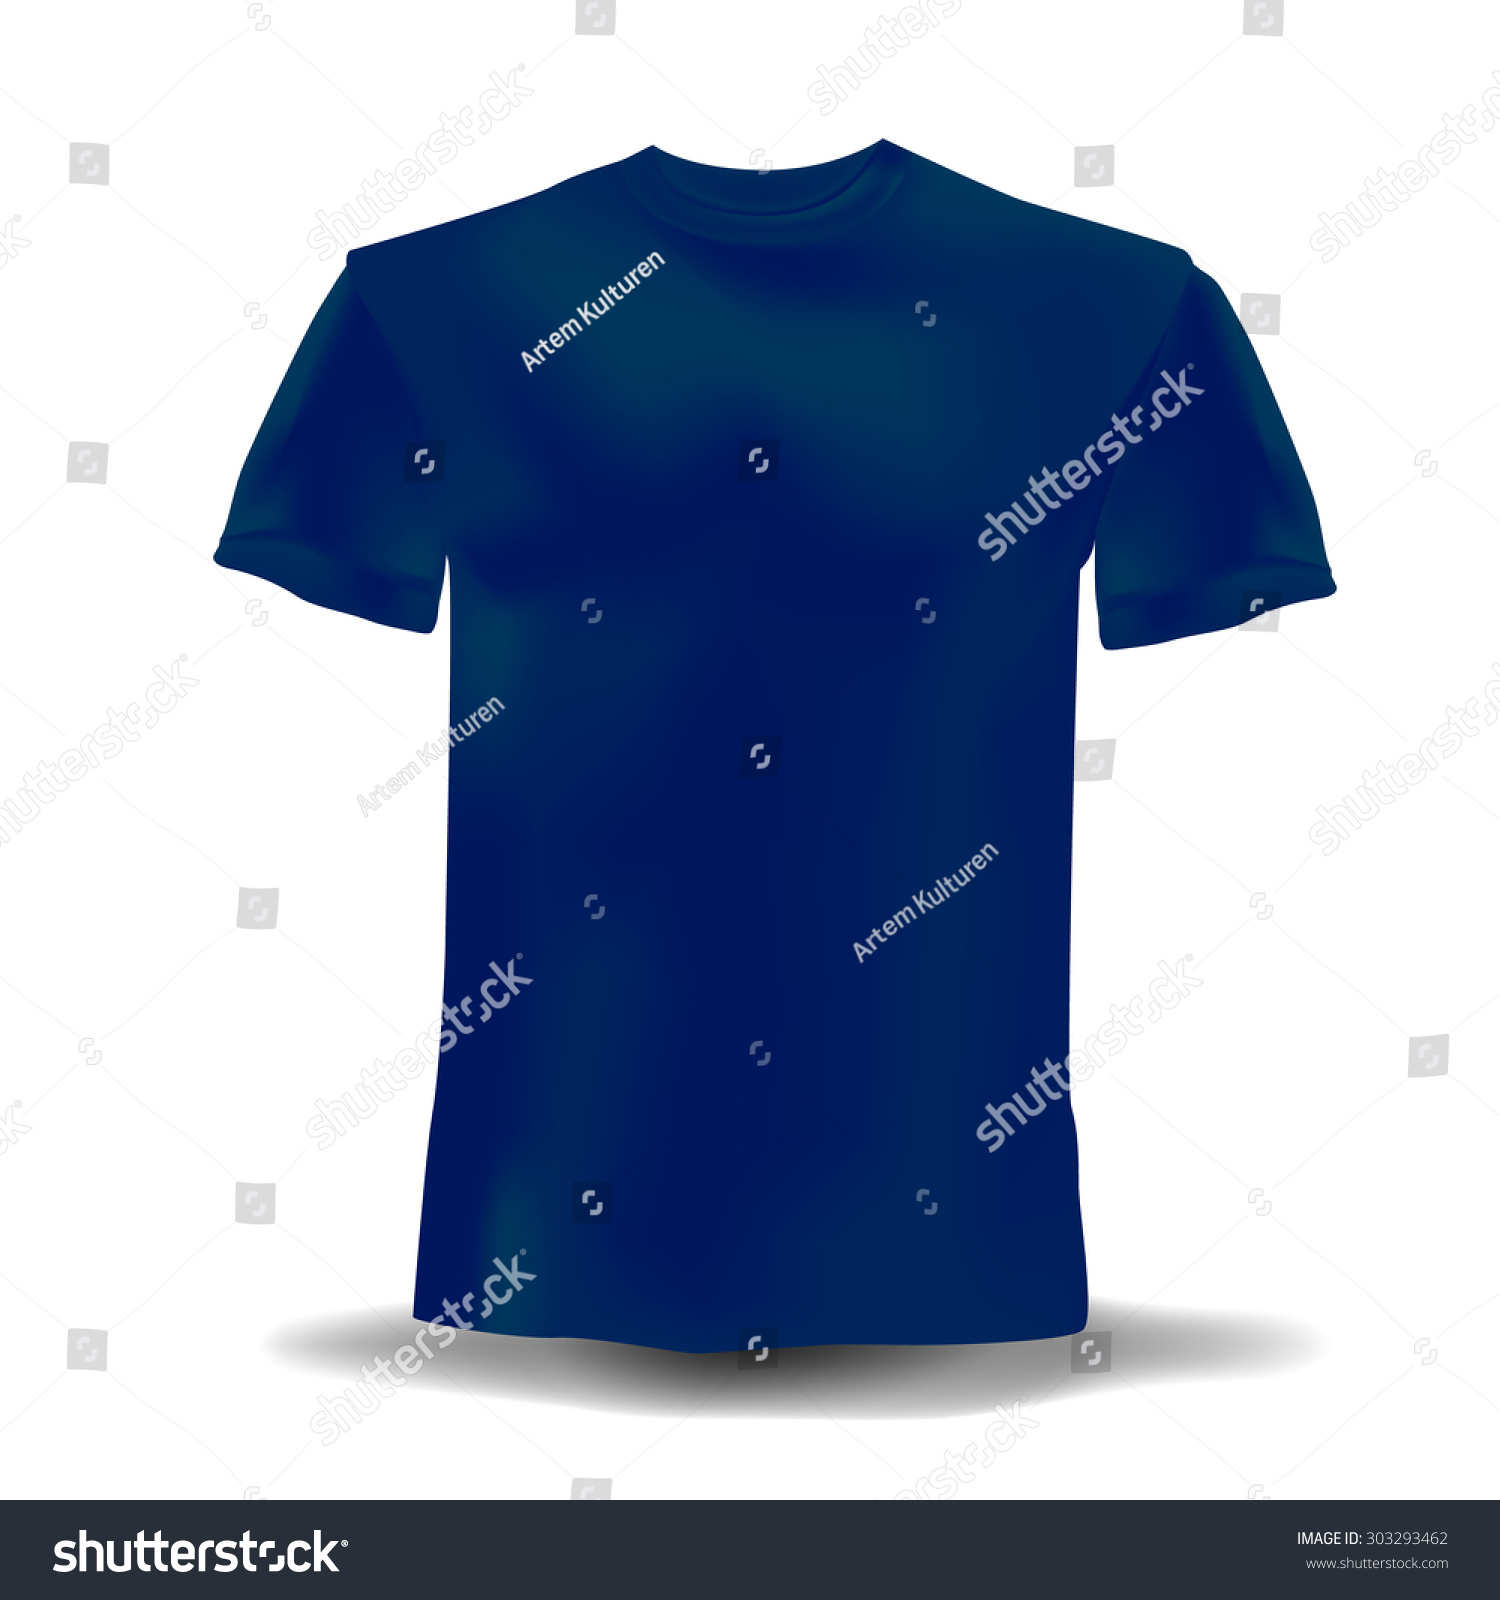 Isolated realistic navy blue template tshirts stock vector for Blue t shirt template